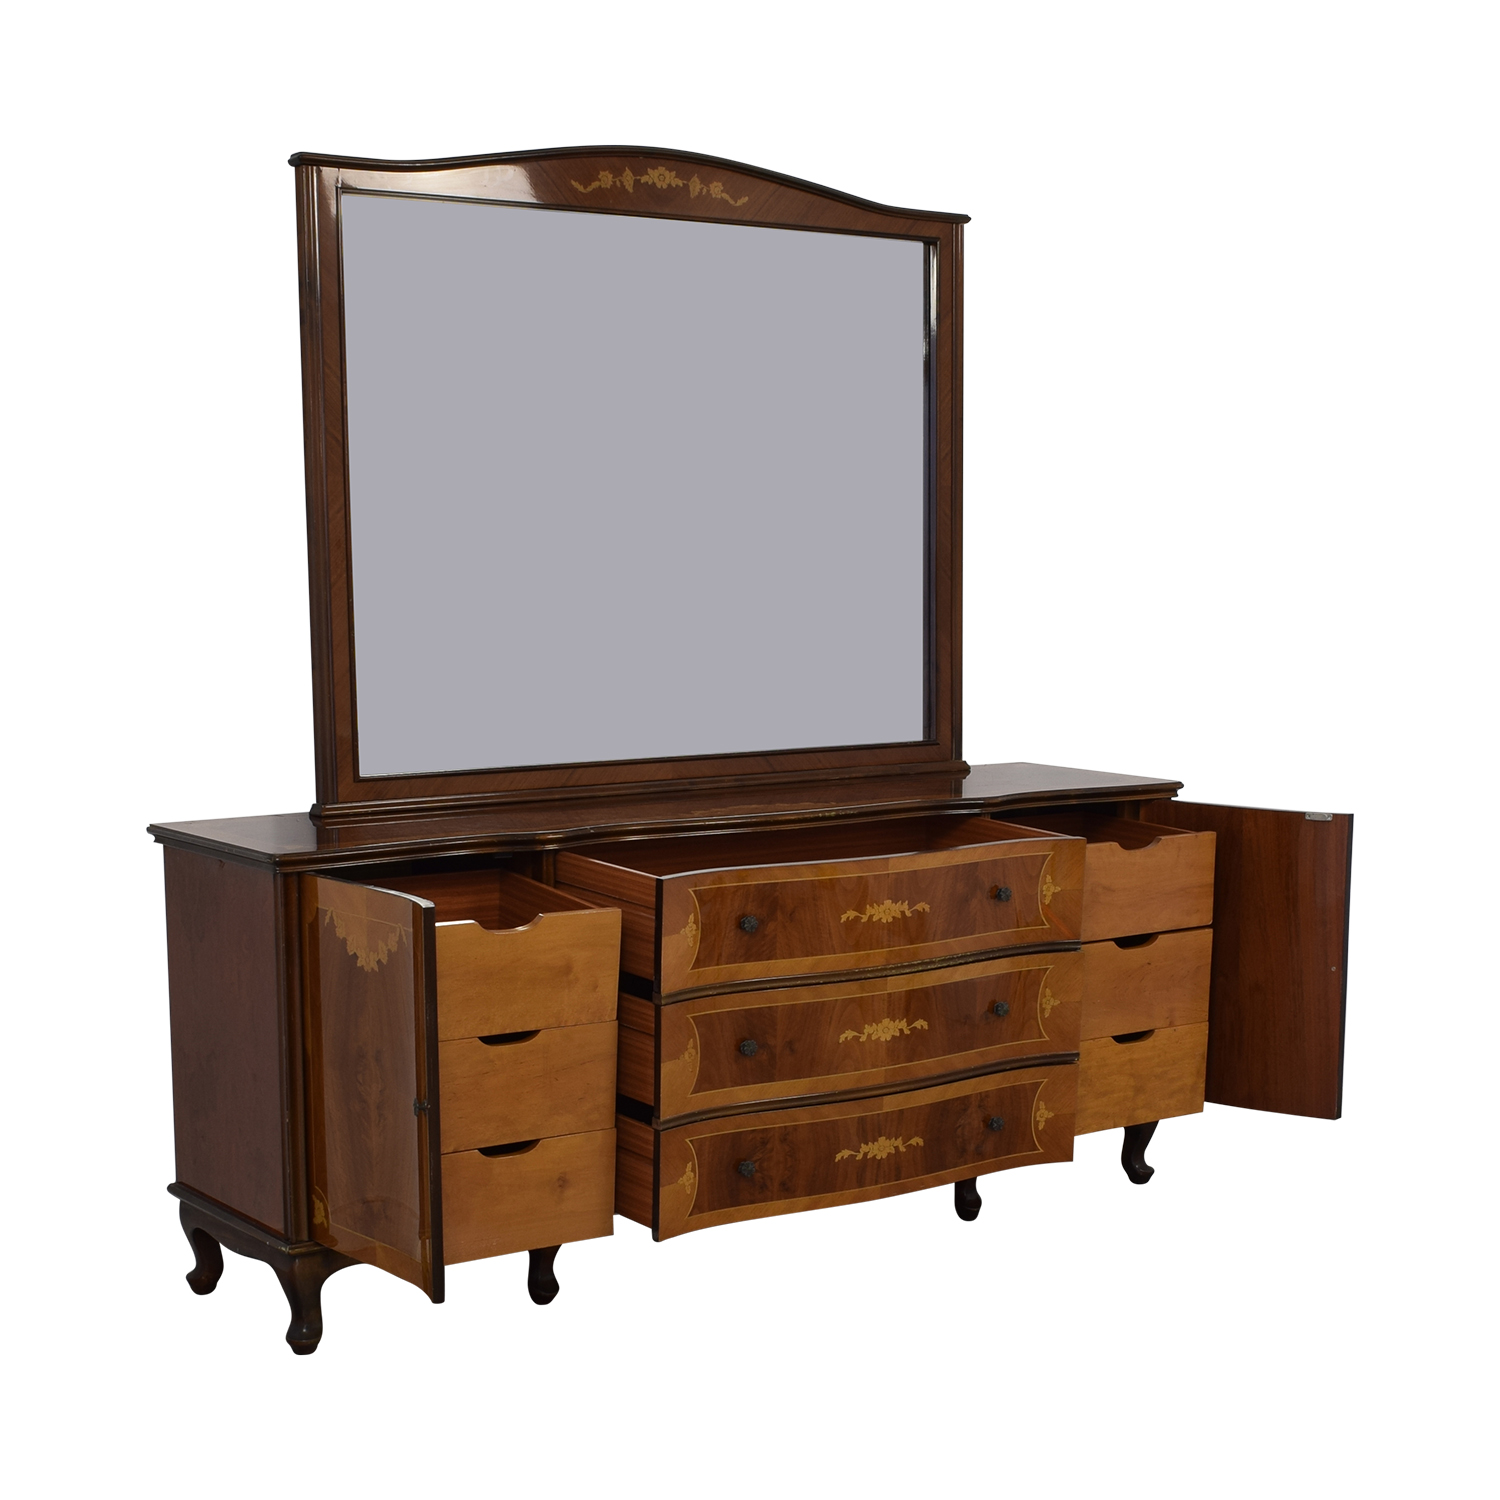 Roma Furniture Dresser with Mirror discount